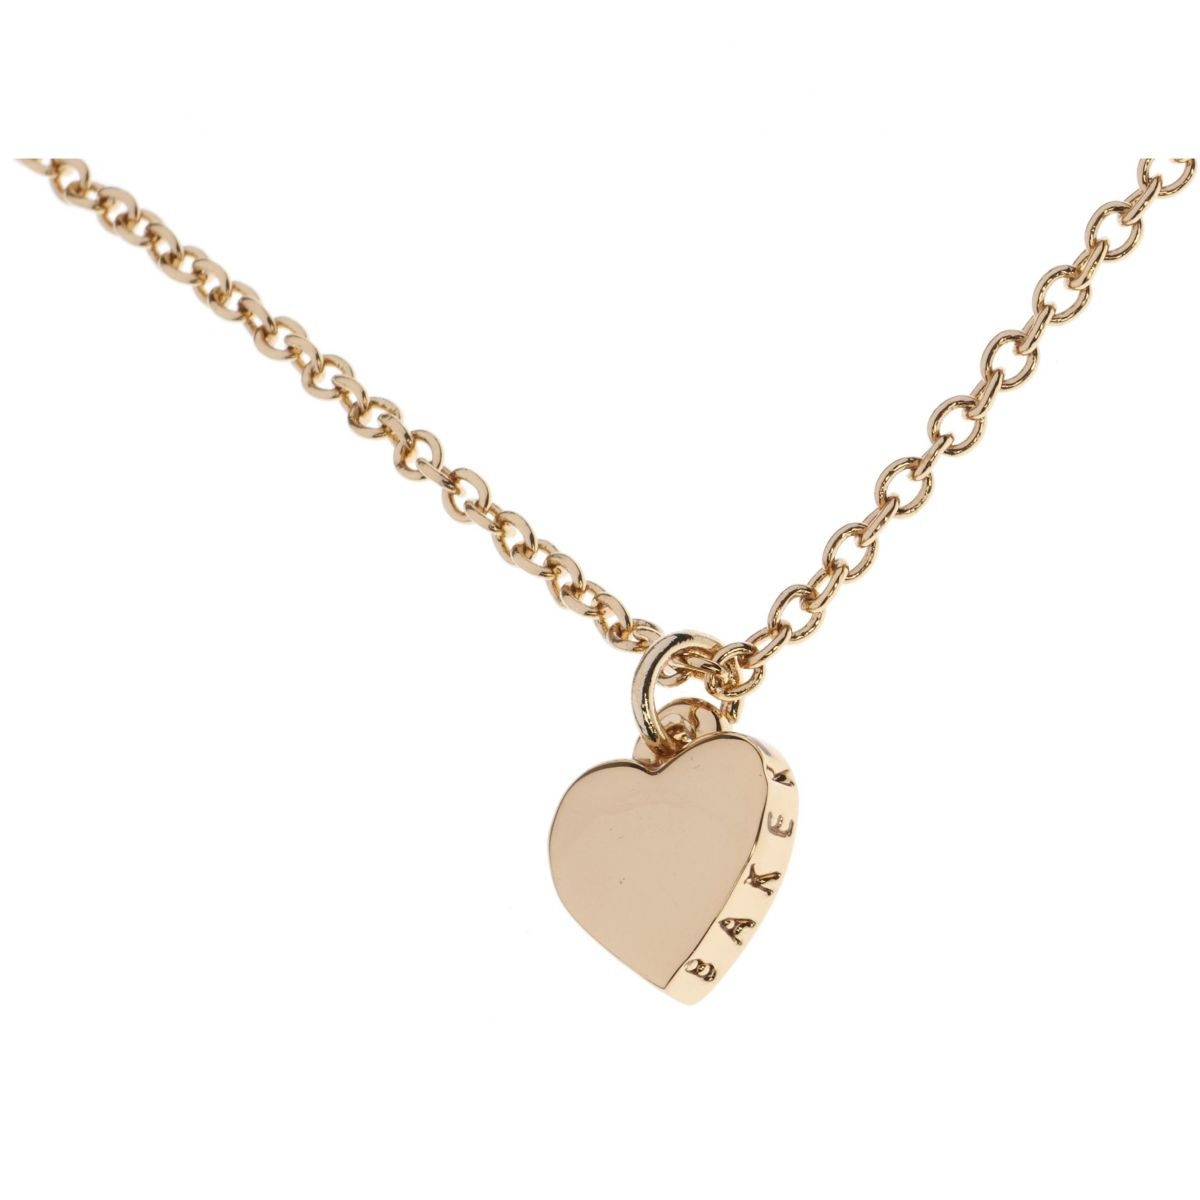 Ladies ted baker jewellery pvd gold plated hara tiny heart pendant video link productthumb productthumb productthumb productthumb productthumb mozeypictures Images